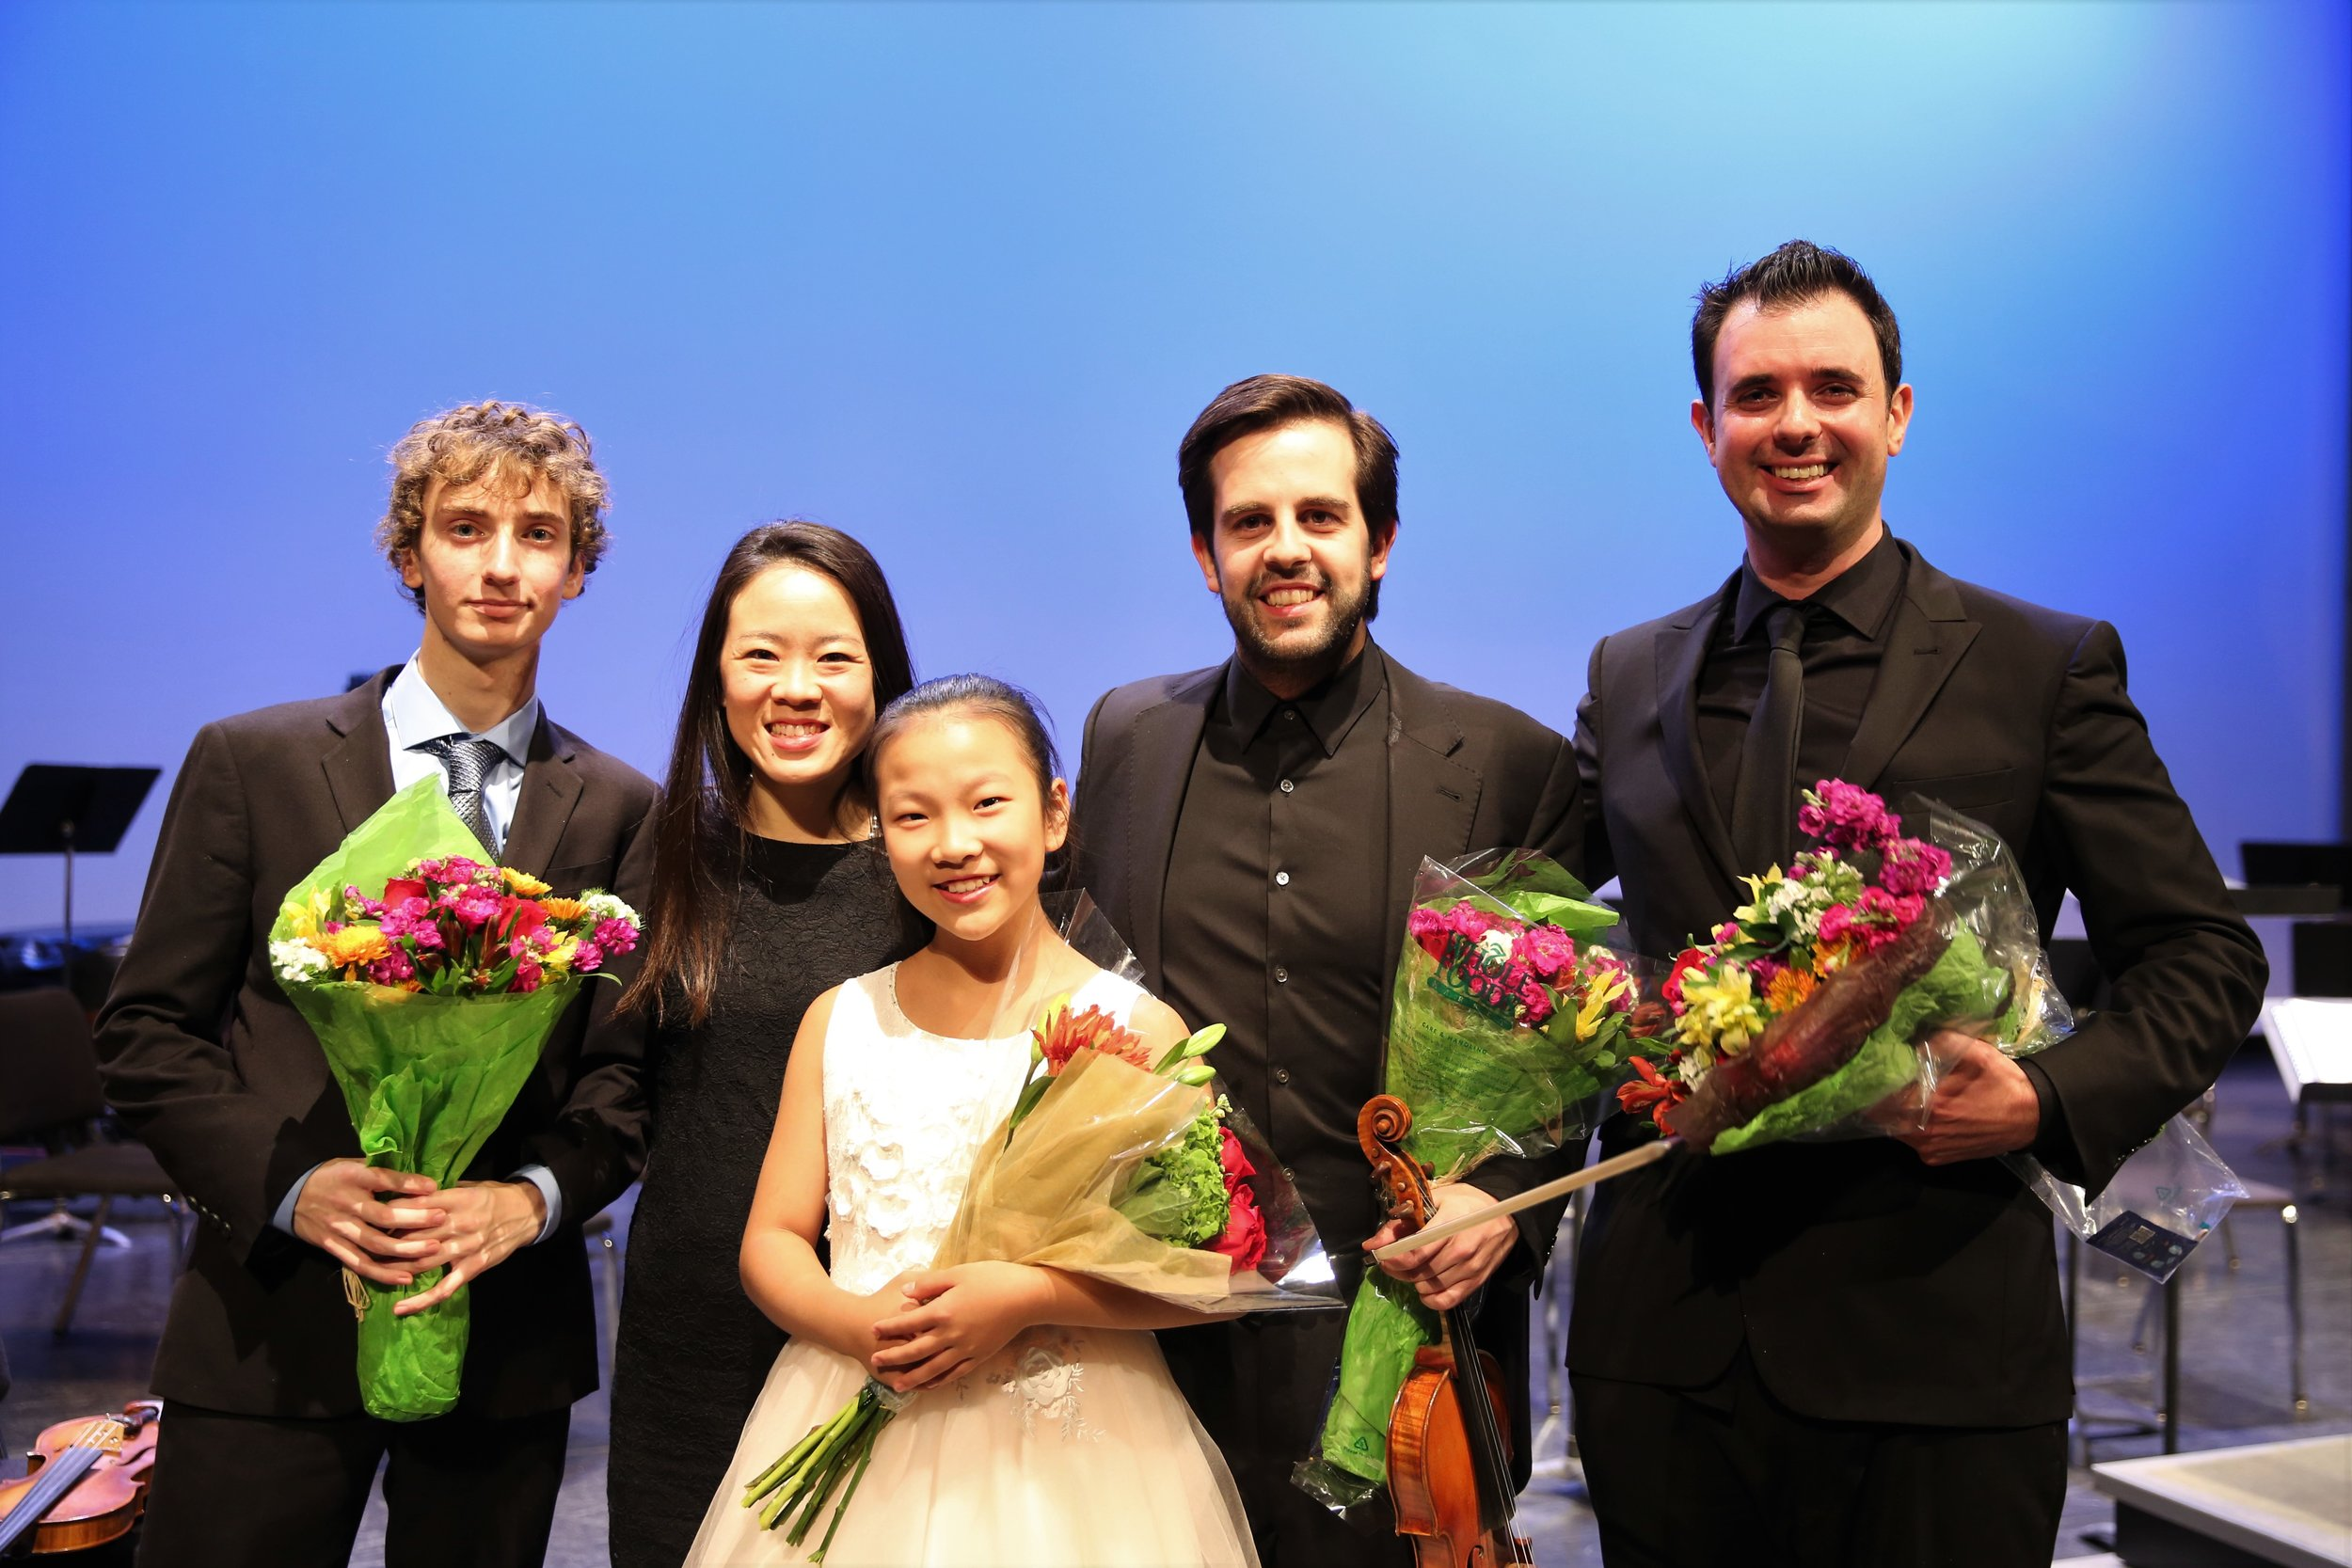 CCMF 2018 Concerto Competition winners Noah Kublank (Violin) and Clara Zhang (Piano), with CCMF Directors Dr. Susan Tang and Dr. Jaime Gorgojo and NEIU Conductor, Ben Firer